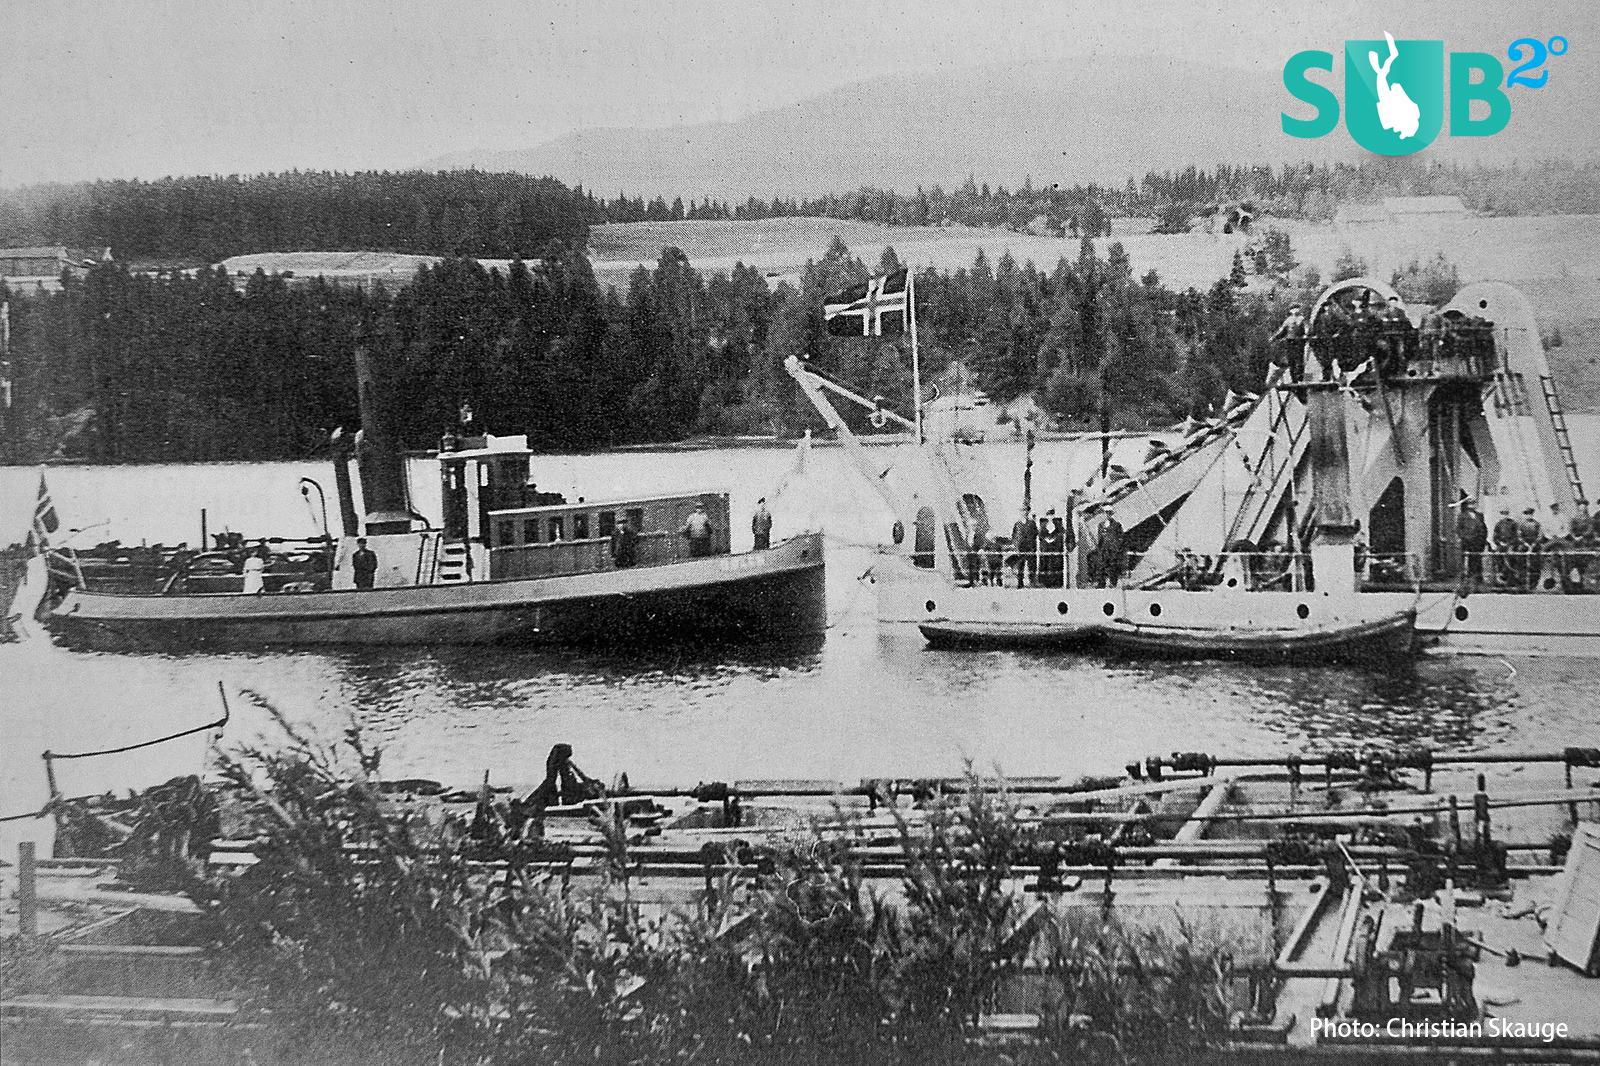 S/S Dølen in her prime, right behind the dredging excavator that was used to tow.